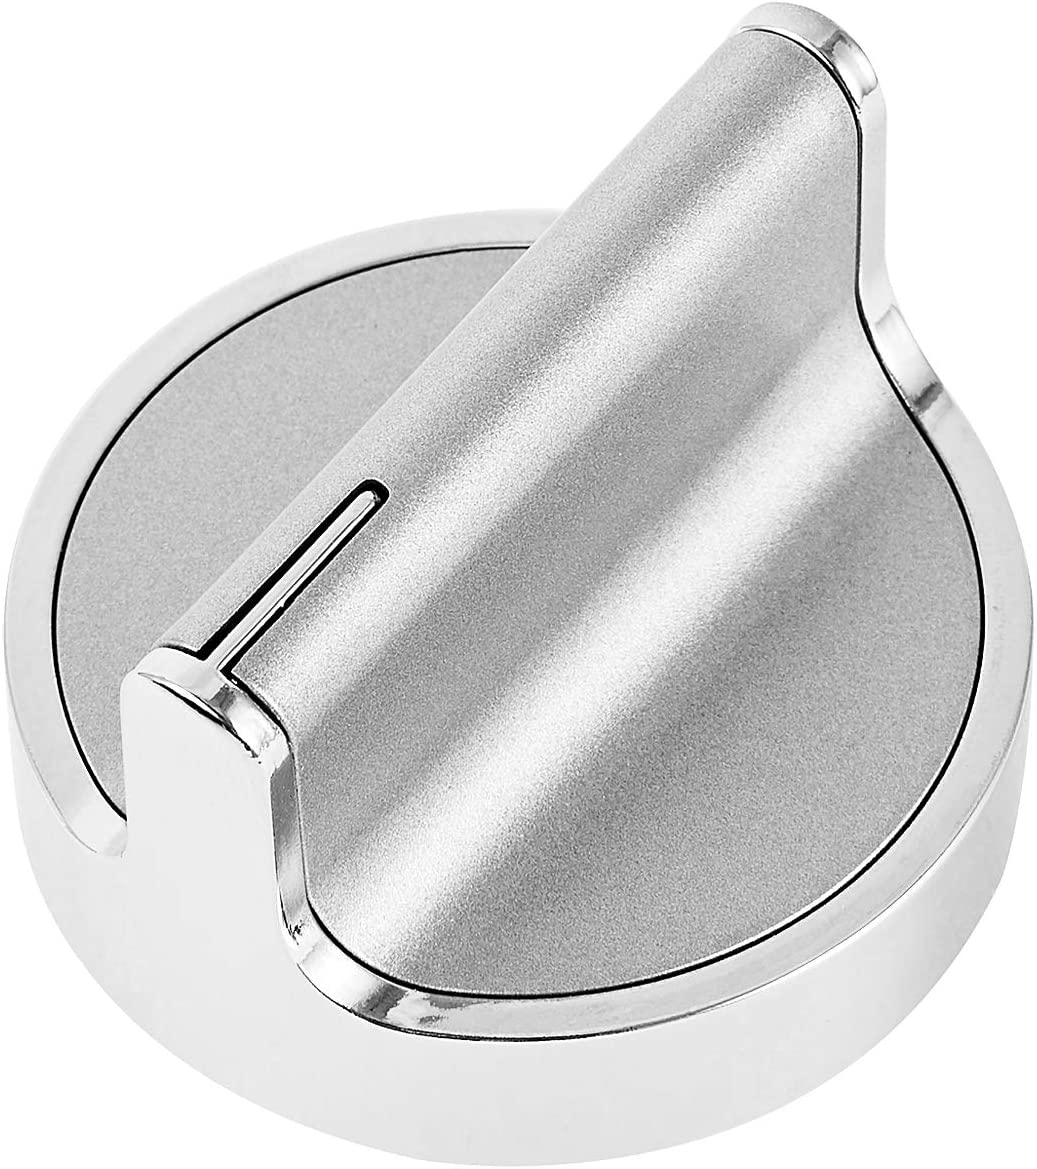 Stainless Steel W10594481 Knob Replacement for Whirlpool Stove/Range Control Knob Replace WPW10594481, AP6023301, PS11756643, W10698166 WCG97US0DS00, High Durable